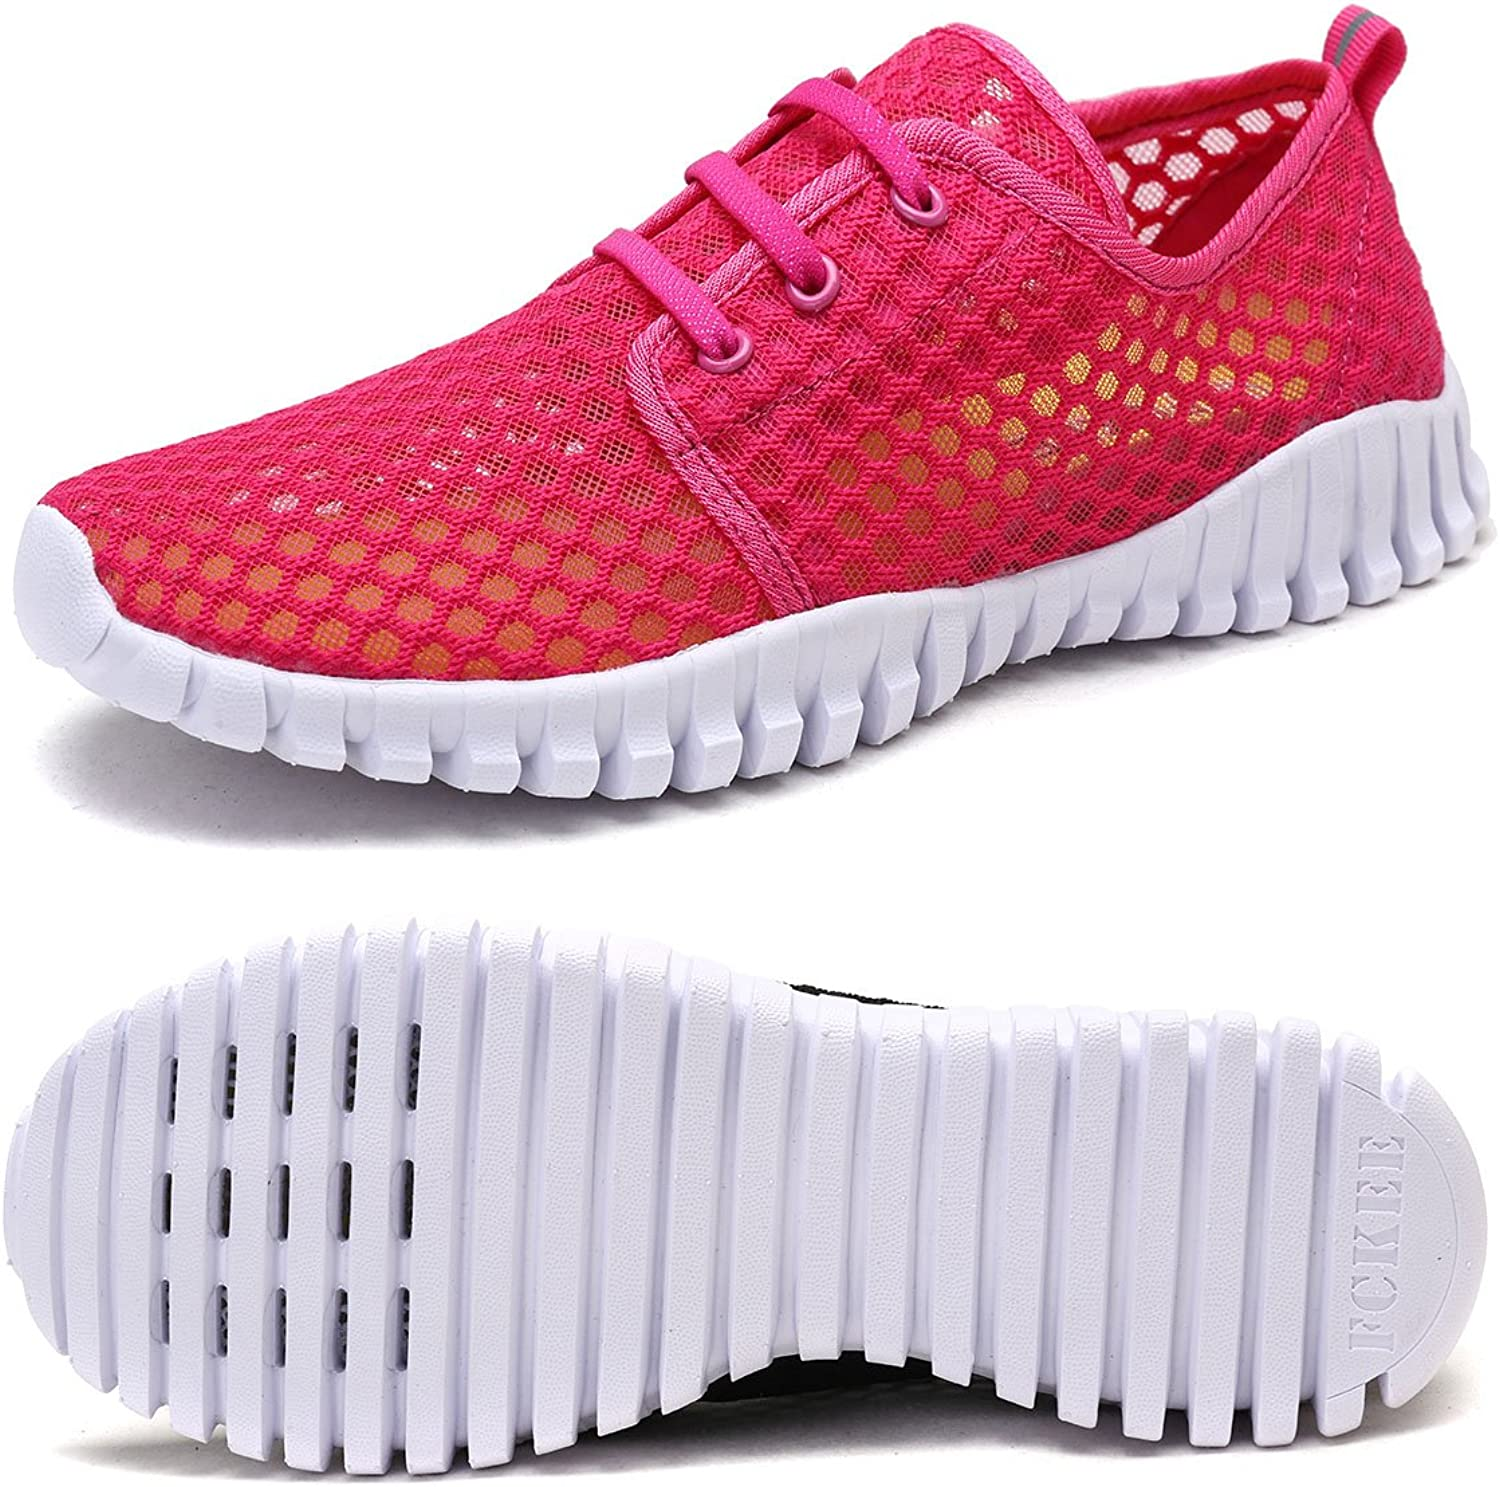 FCKEE Water shoes Slip-On Barefoot Lightweight Mesh Sport Running shoes Casual Sneaker Quick-Dry Drainage Durable Sole Women Men